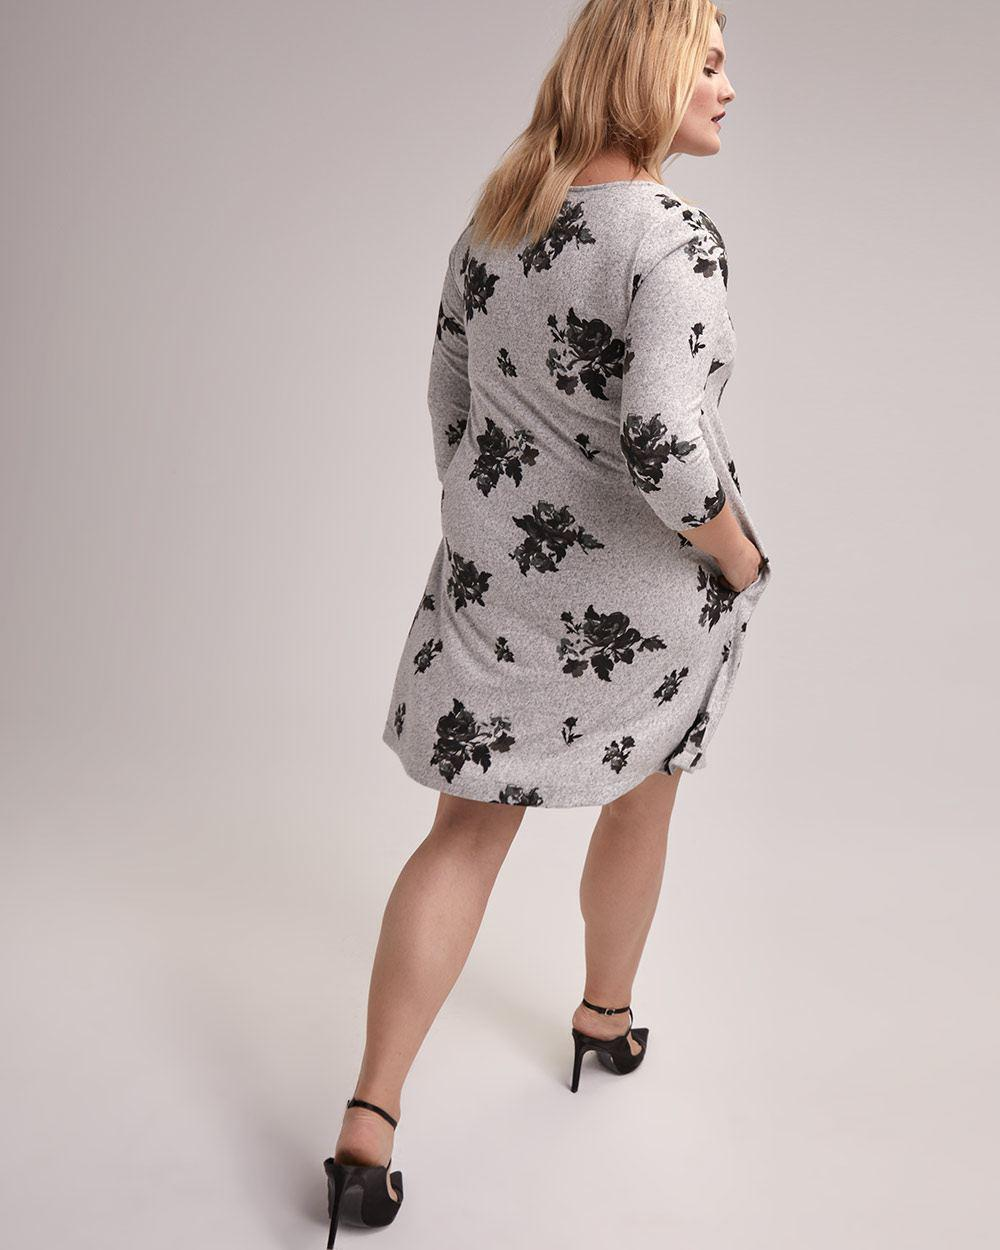 a88de5324acc Lyst - Addition Elle Printed A-line Dress - Michel Studio in Gray